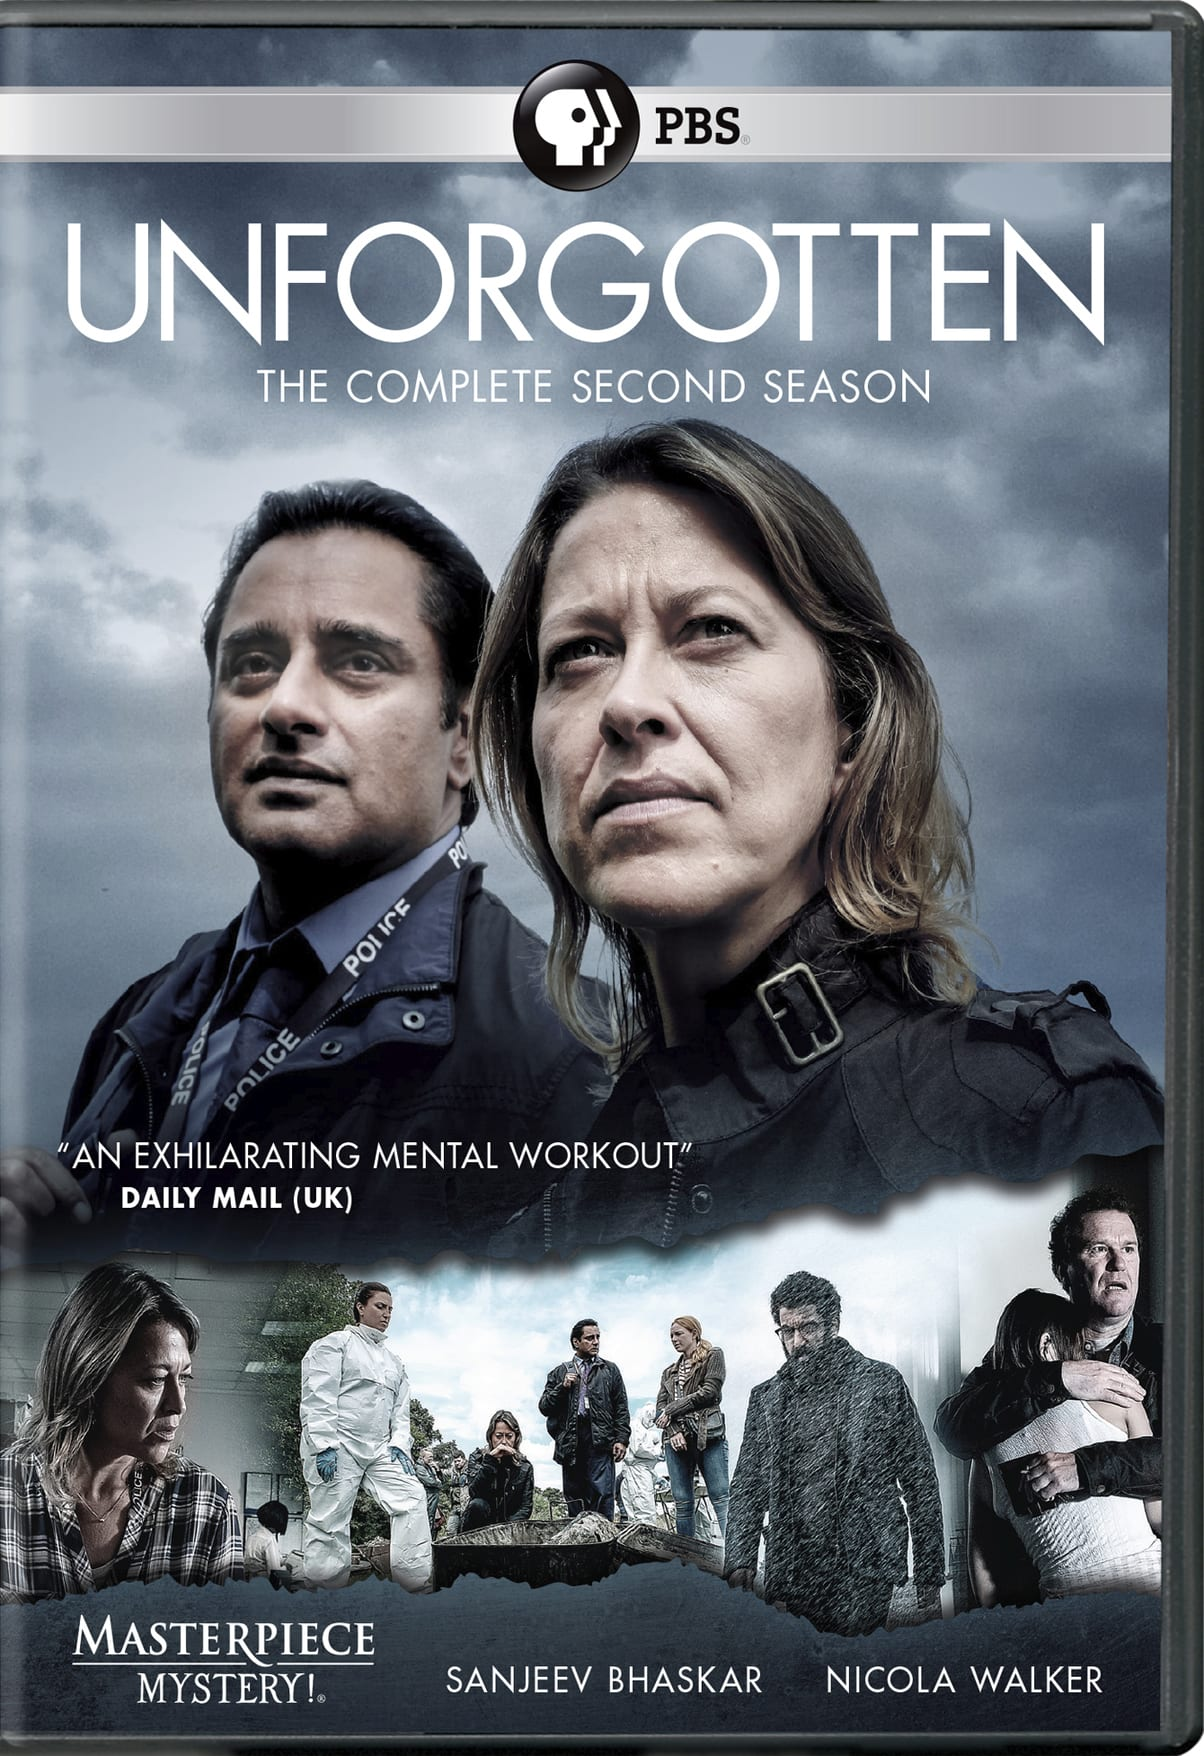 Masterpiece Mystery!: Unforgotten - The Complete Second Season (2018) [DVD]